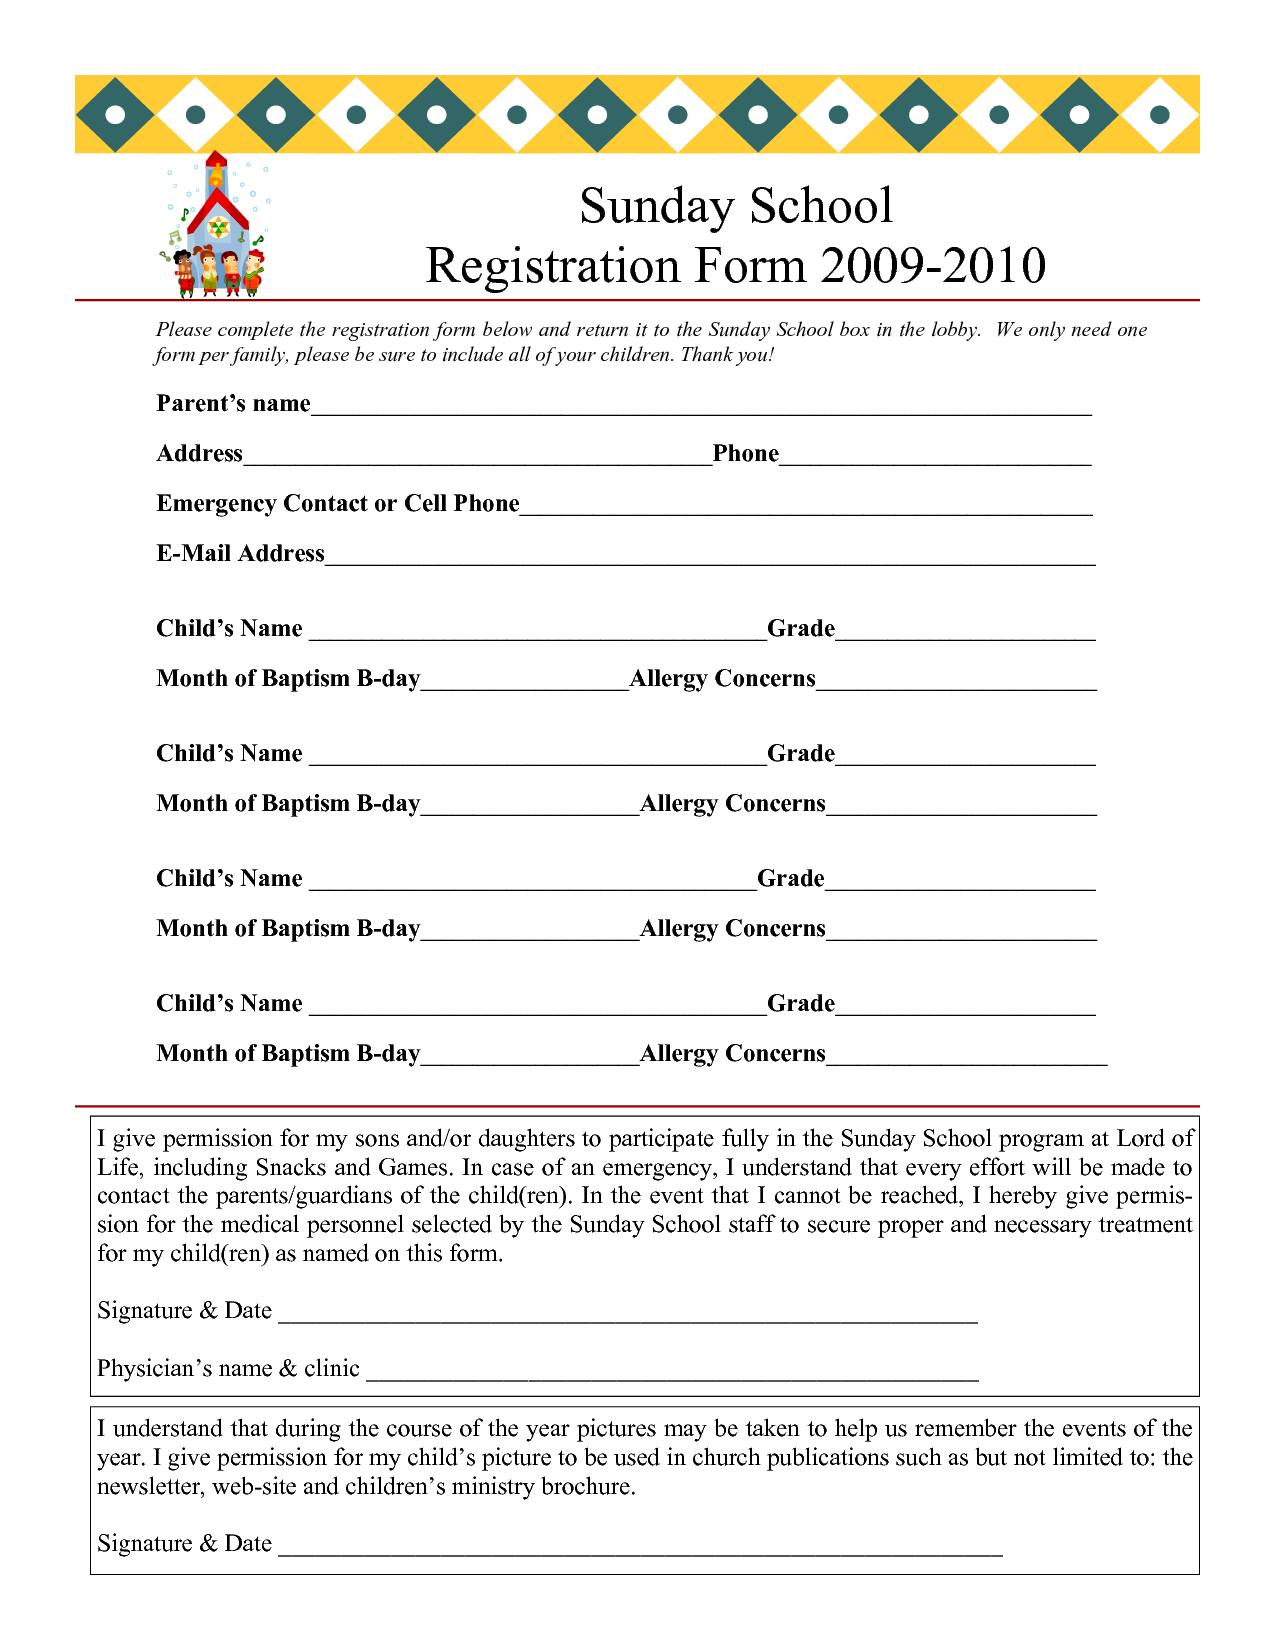 Church nursery forms thenurseries for School register template spreadsheet